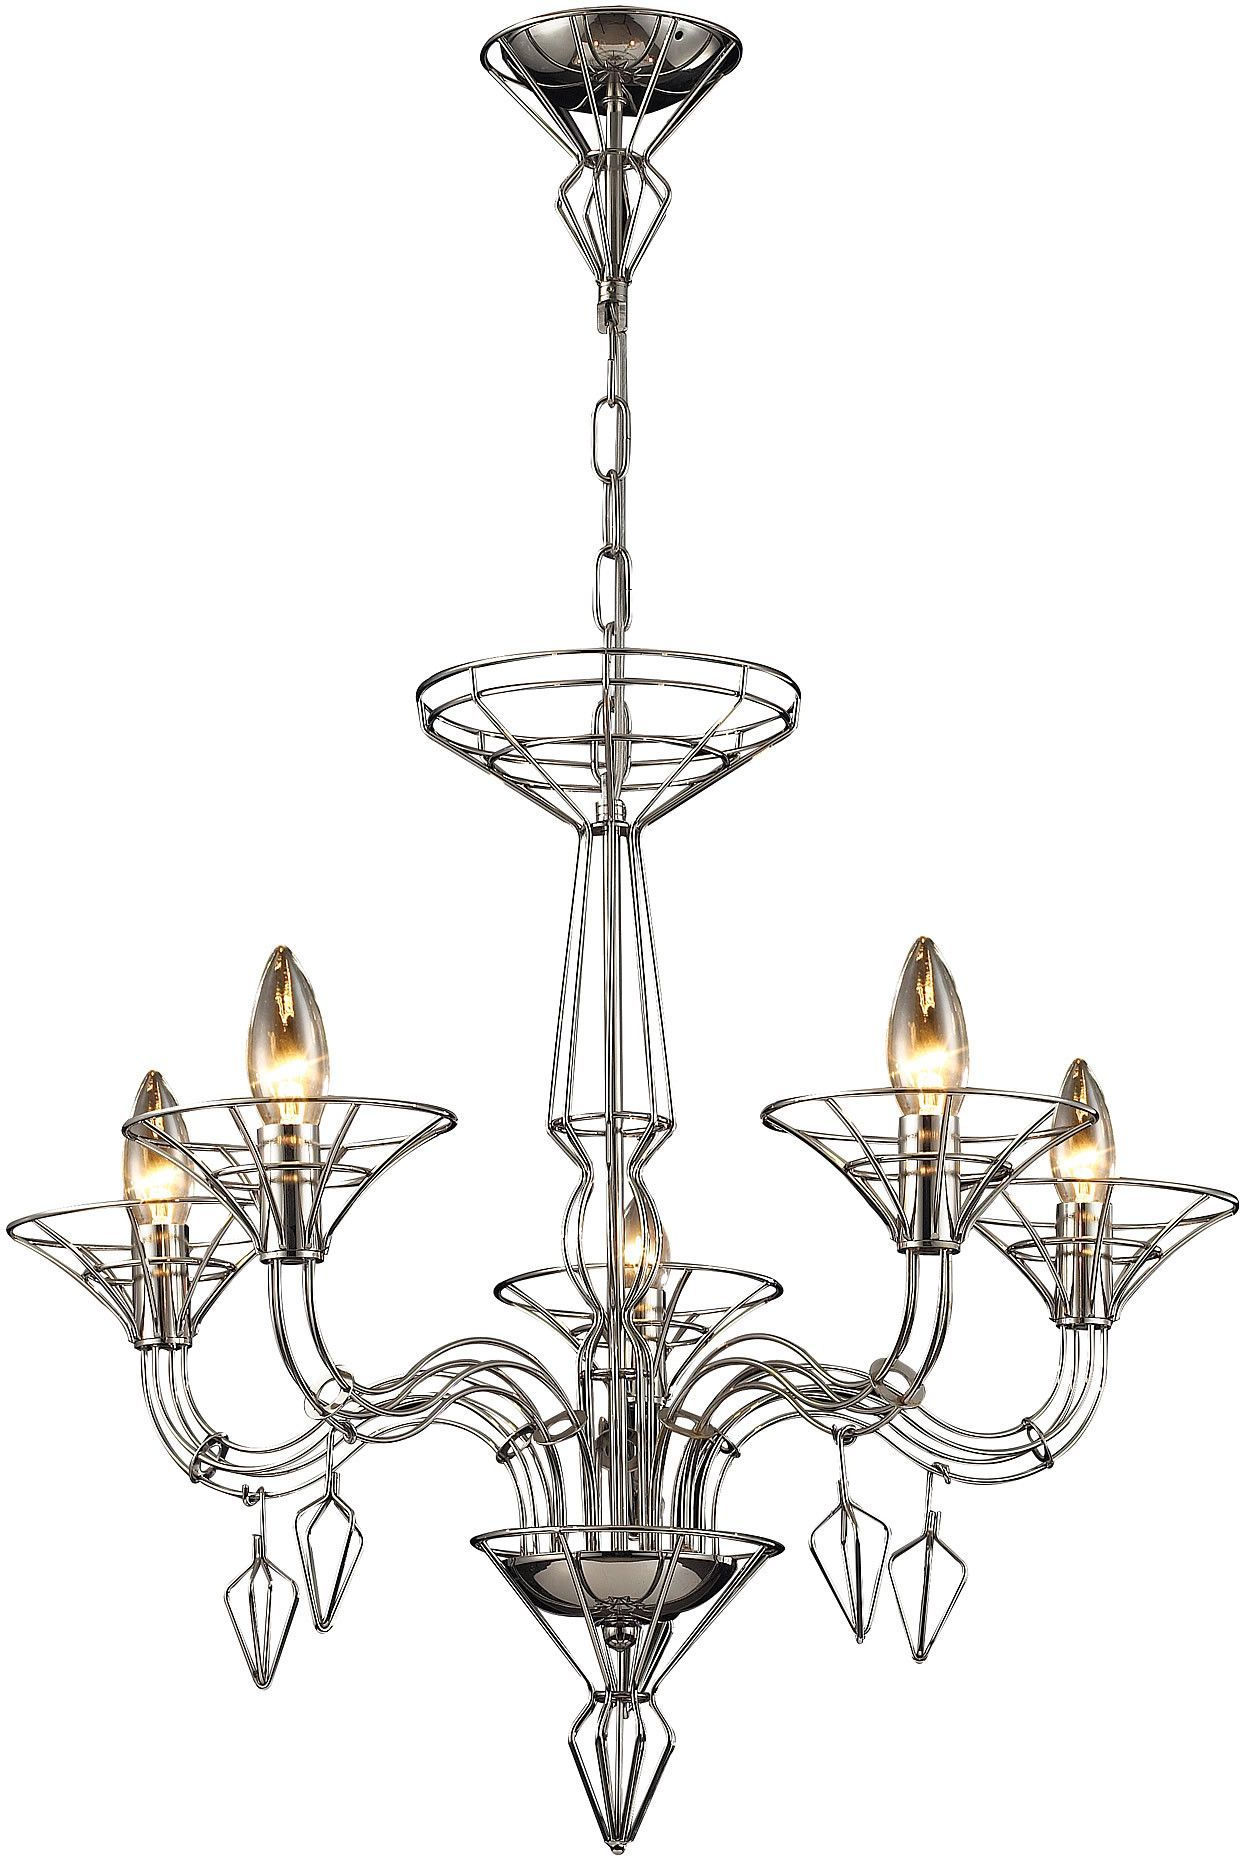 "2020 Hesse 5 Light Candle-Style Chandeliers in 0-016797>26""""w Couture 5-Light Chandelier Satin Nickel With"